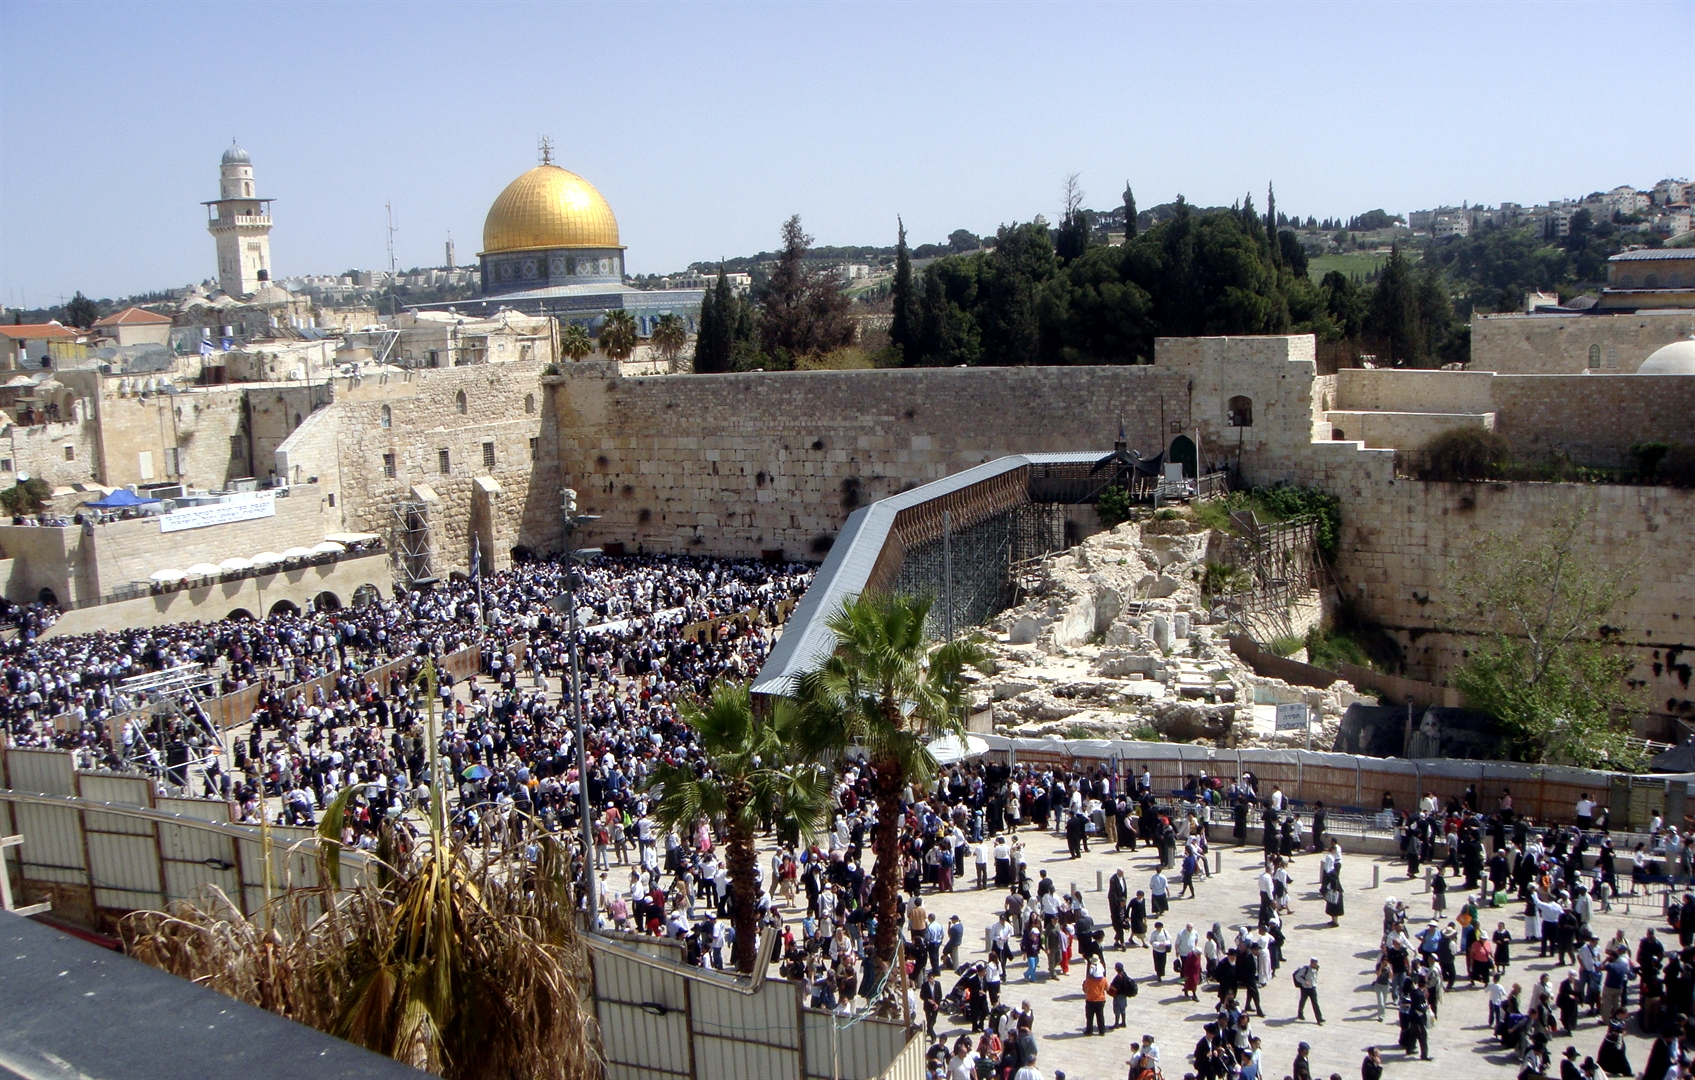 The historical record reveals that the Jewish People have been gathering  at the Western (Wailing) Wall in the Old City of Jerusalem to pray since  before the fourth century.  It is the logical place to come as the Western  Wall is part of the retaining wall for the Temple Mount, and the last vestige  of the Second Temple.